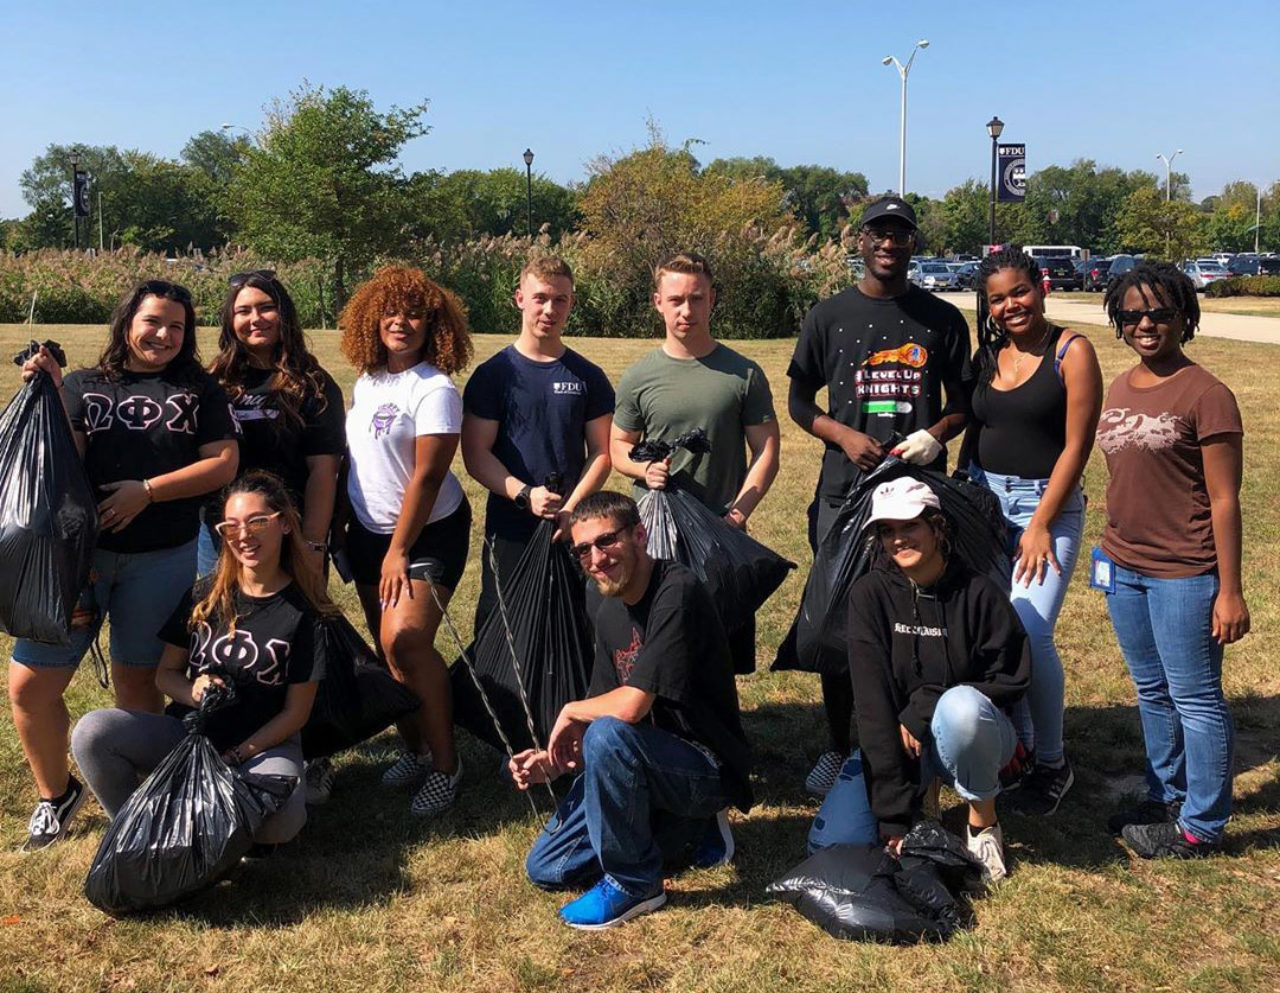 A group of students holding garbage bags pose for a photo.